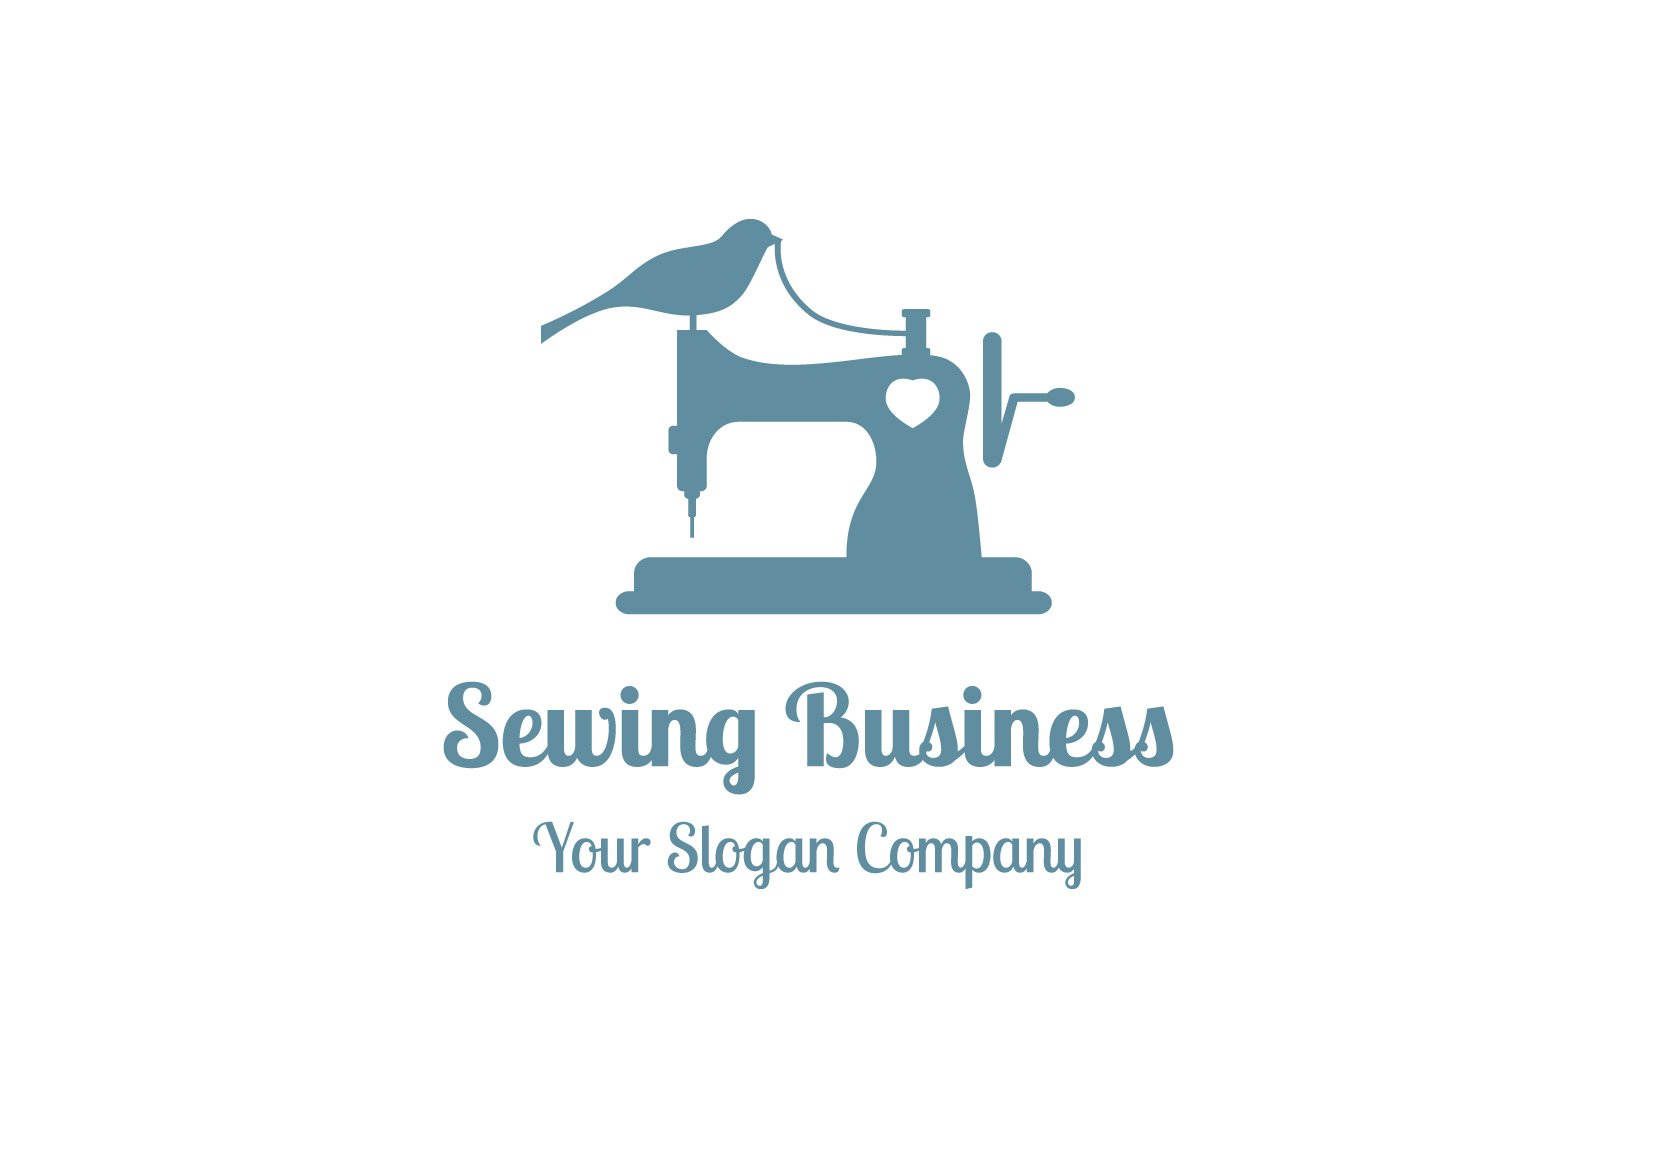 Sewing business logo logo templates creative market cheaphphosting